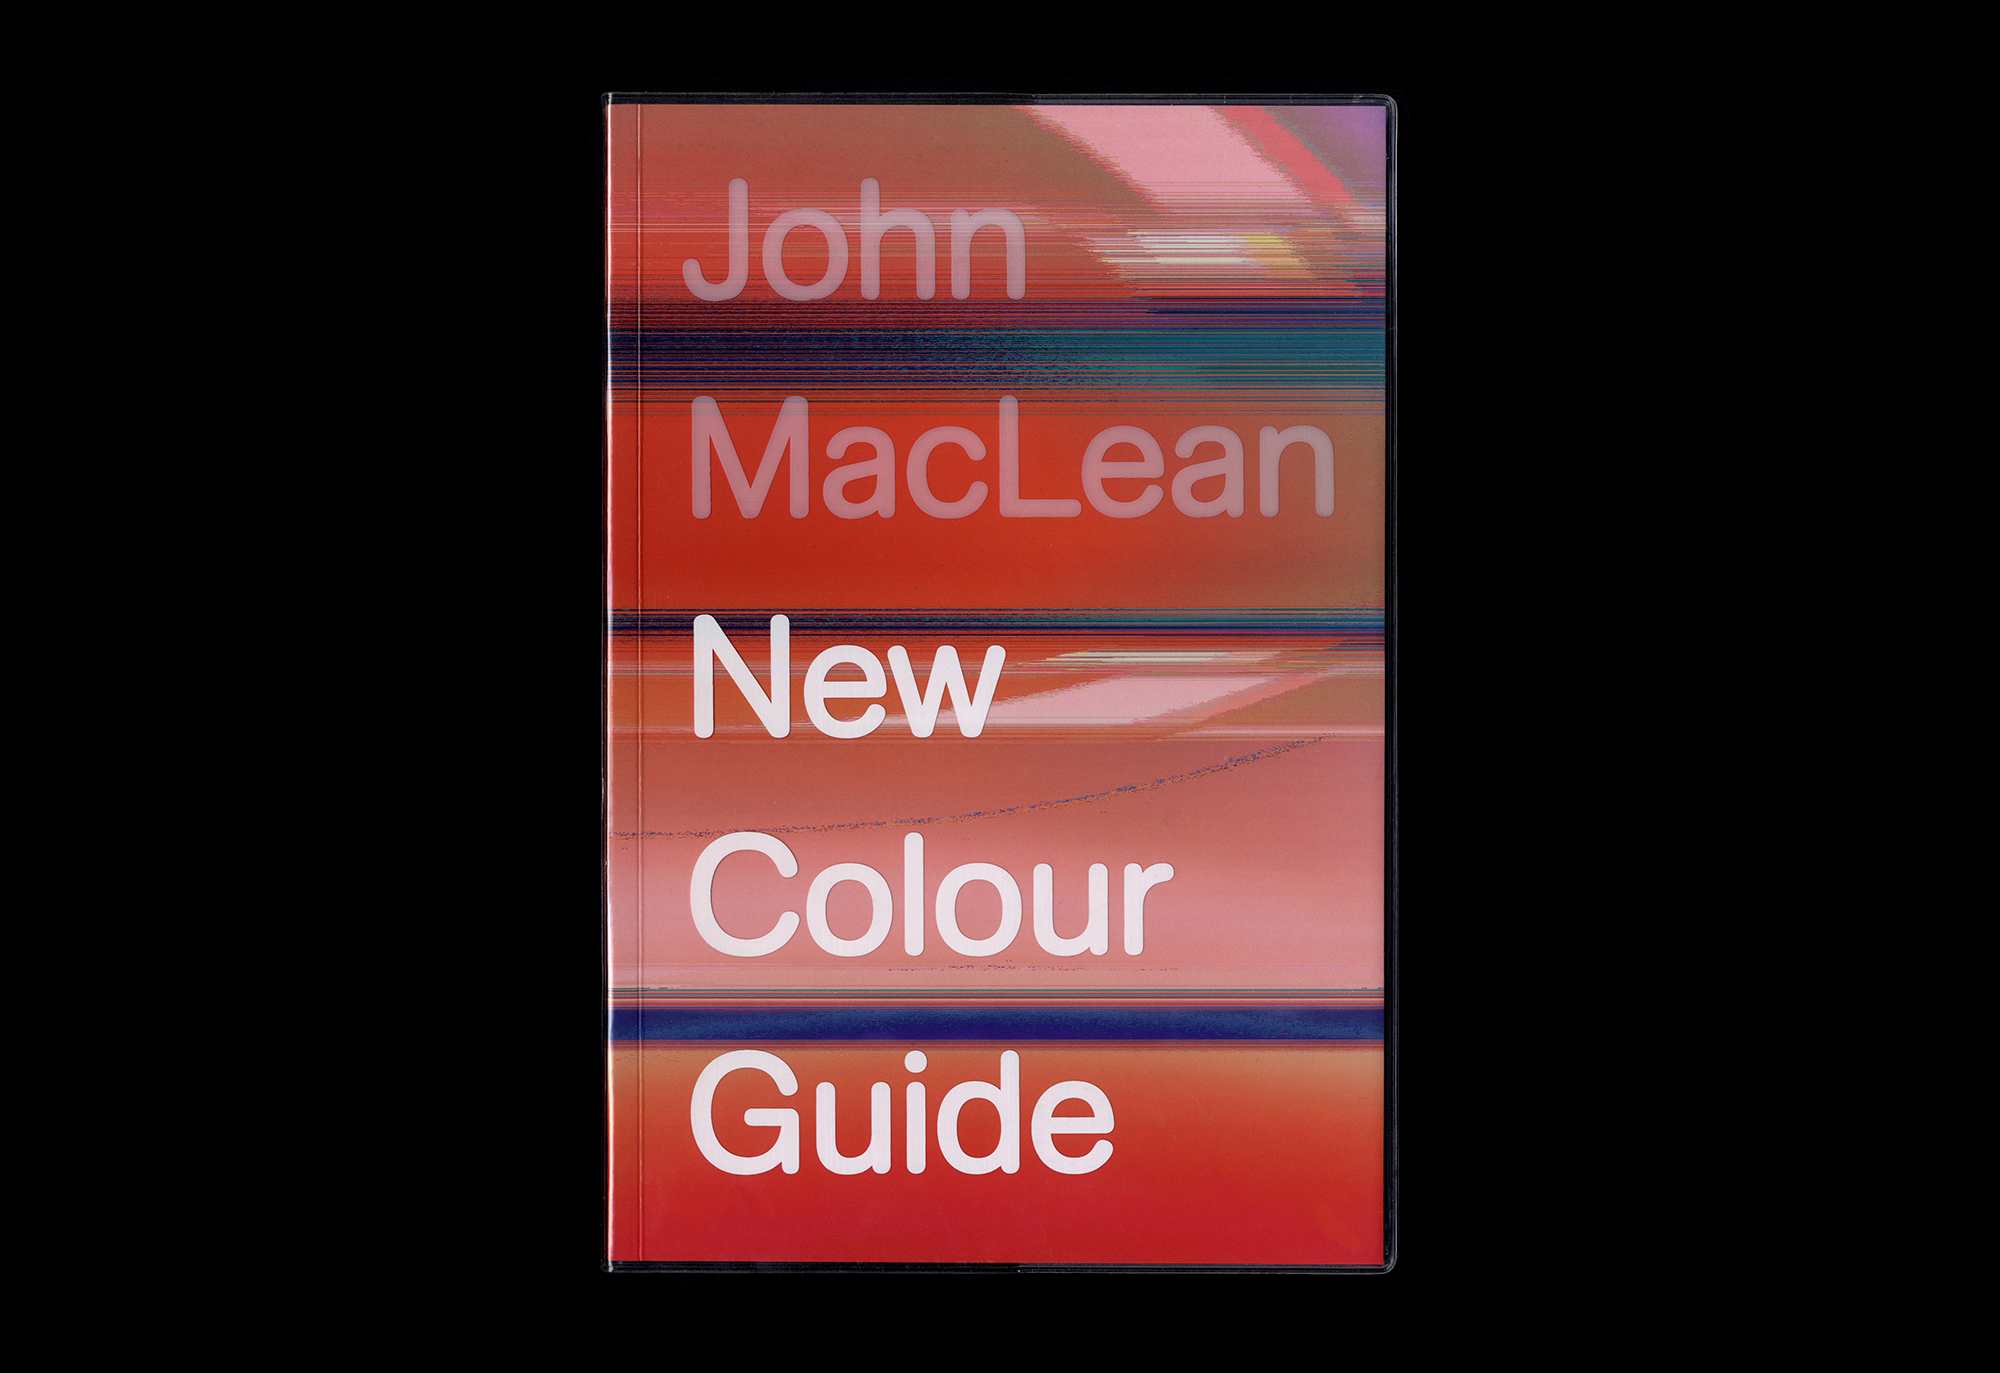 Cover image: John MacLean: New Colour Guide (2012)